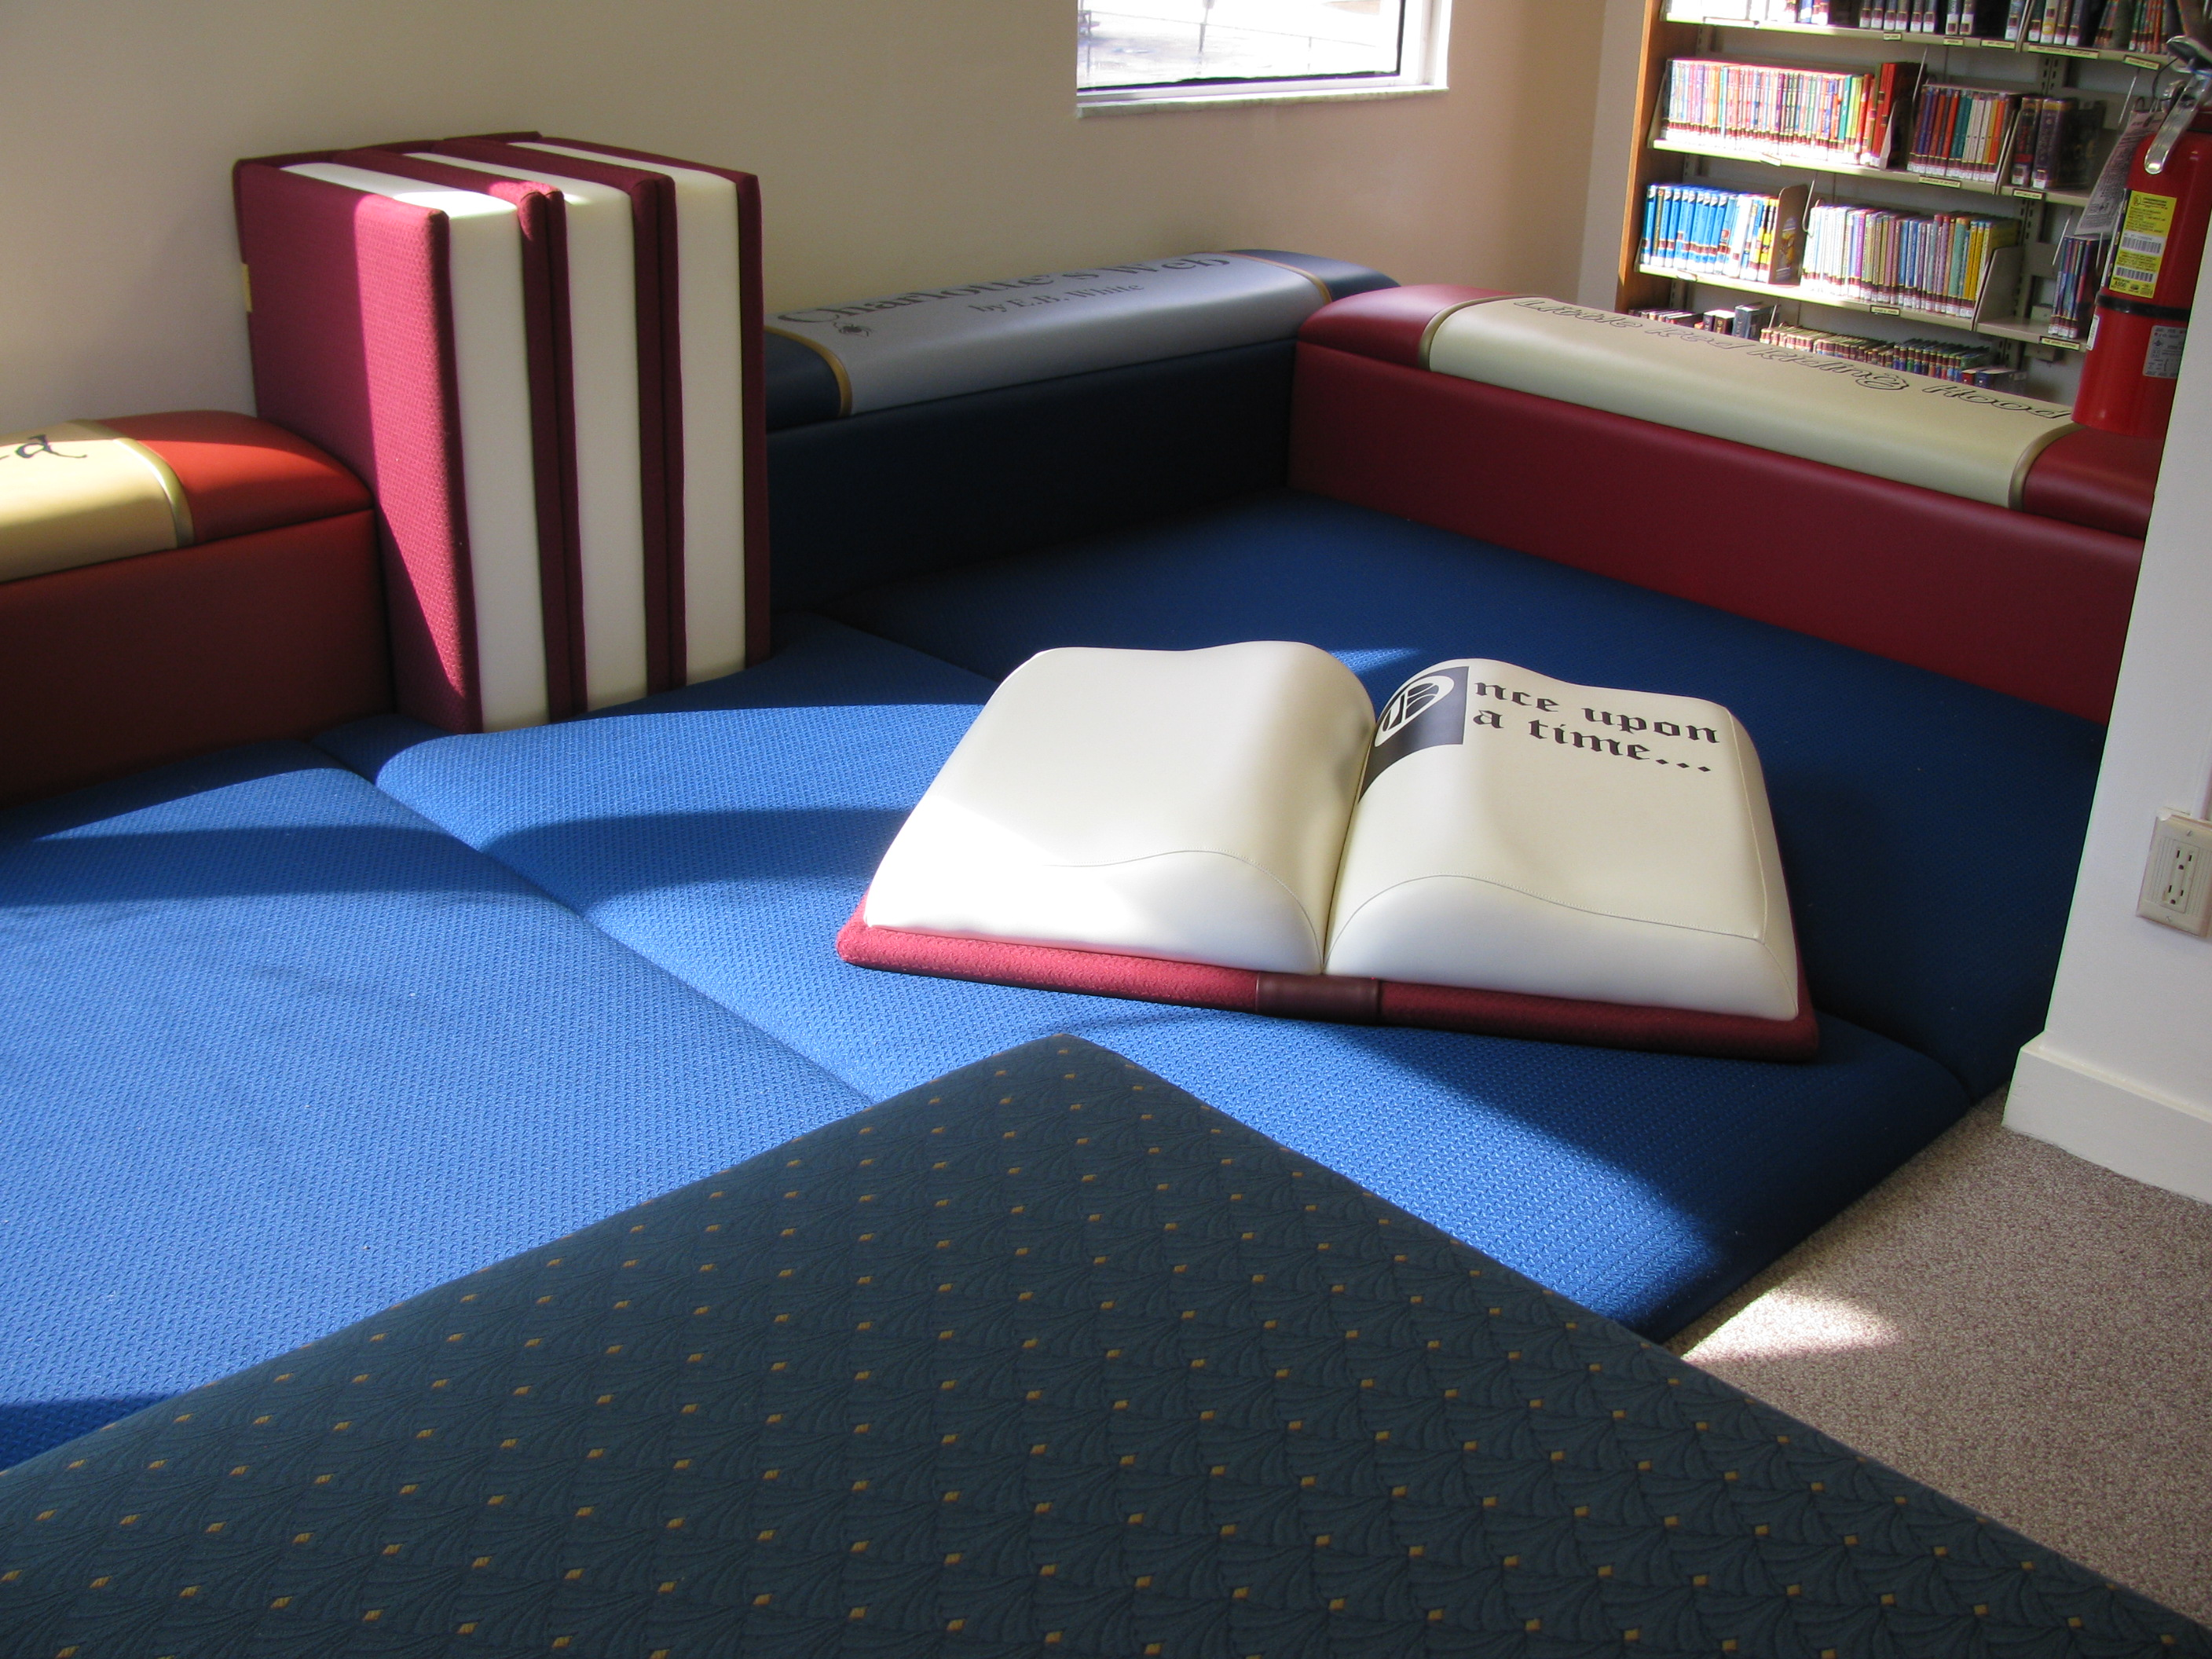 Blue mat on floor with open book pillow